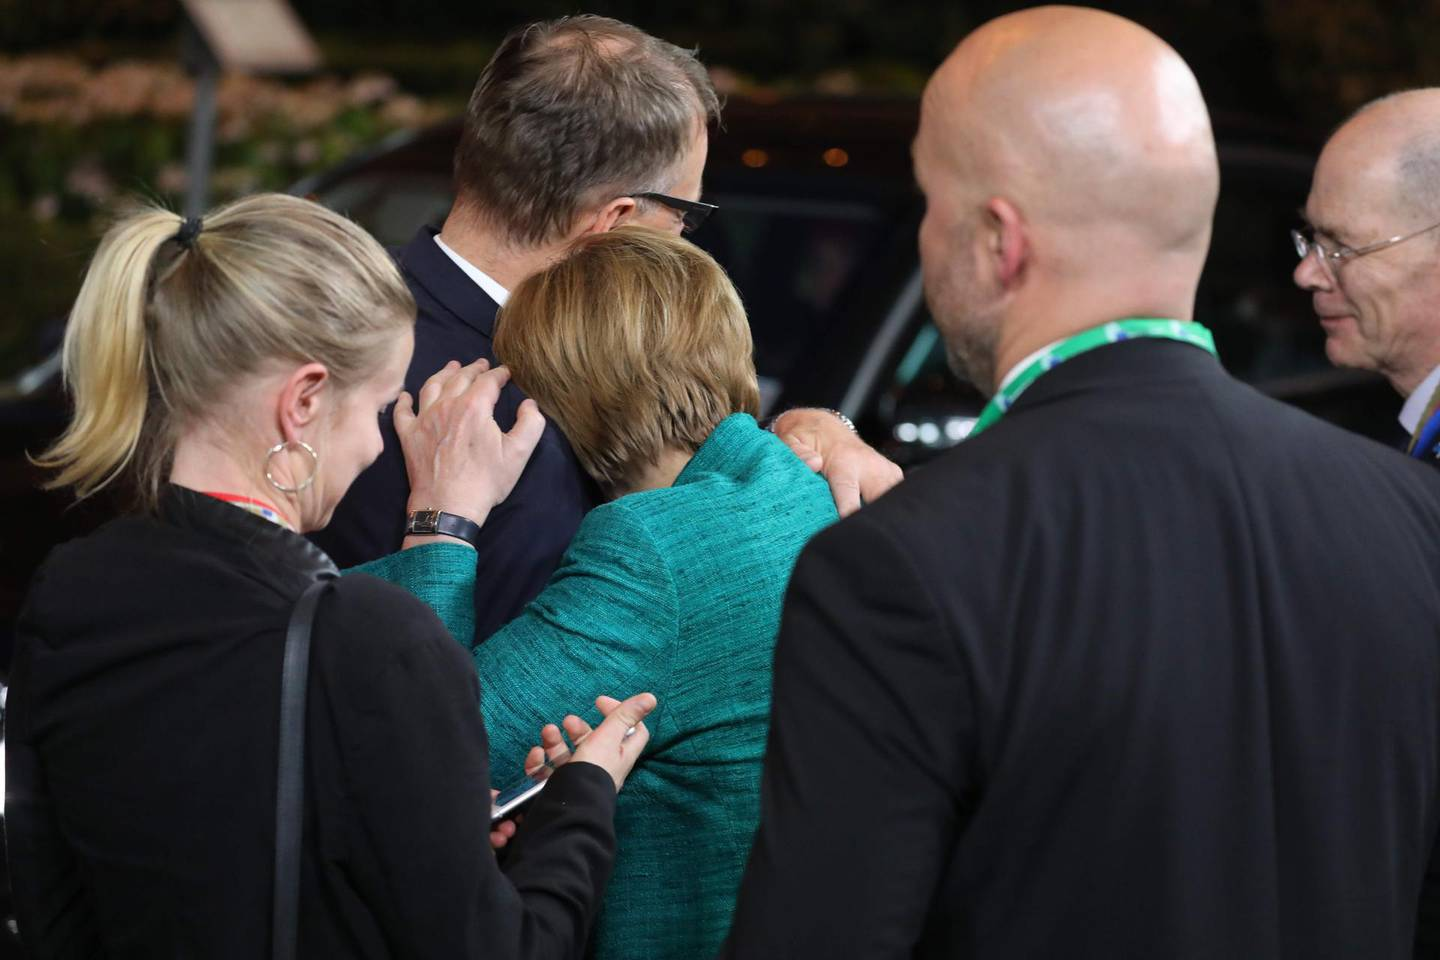 German chancellor Angela Merkel rests on the shoulder of Finland prime minister Juha Sipila before leaving after the first day of the European Council on june 29, 2018, in Brussel. European Union leaders reached a crucial deal on steps to tackle migration during all-night talks on June 29 after resolving a bitter row with Italy's hardline new premier. / AFP / Ludovic MARIN